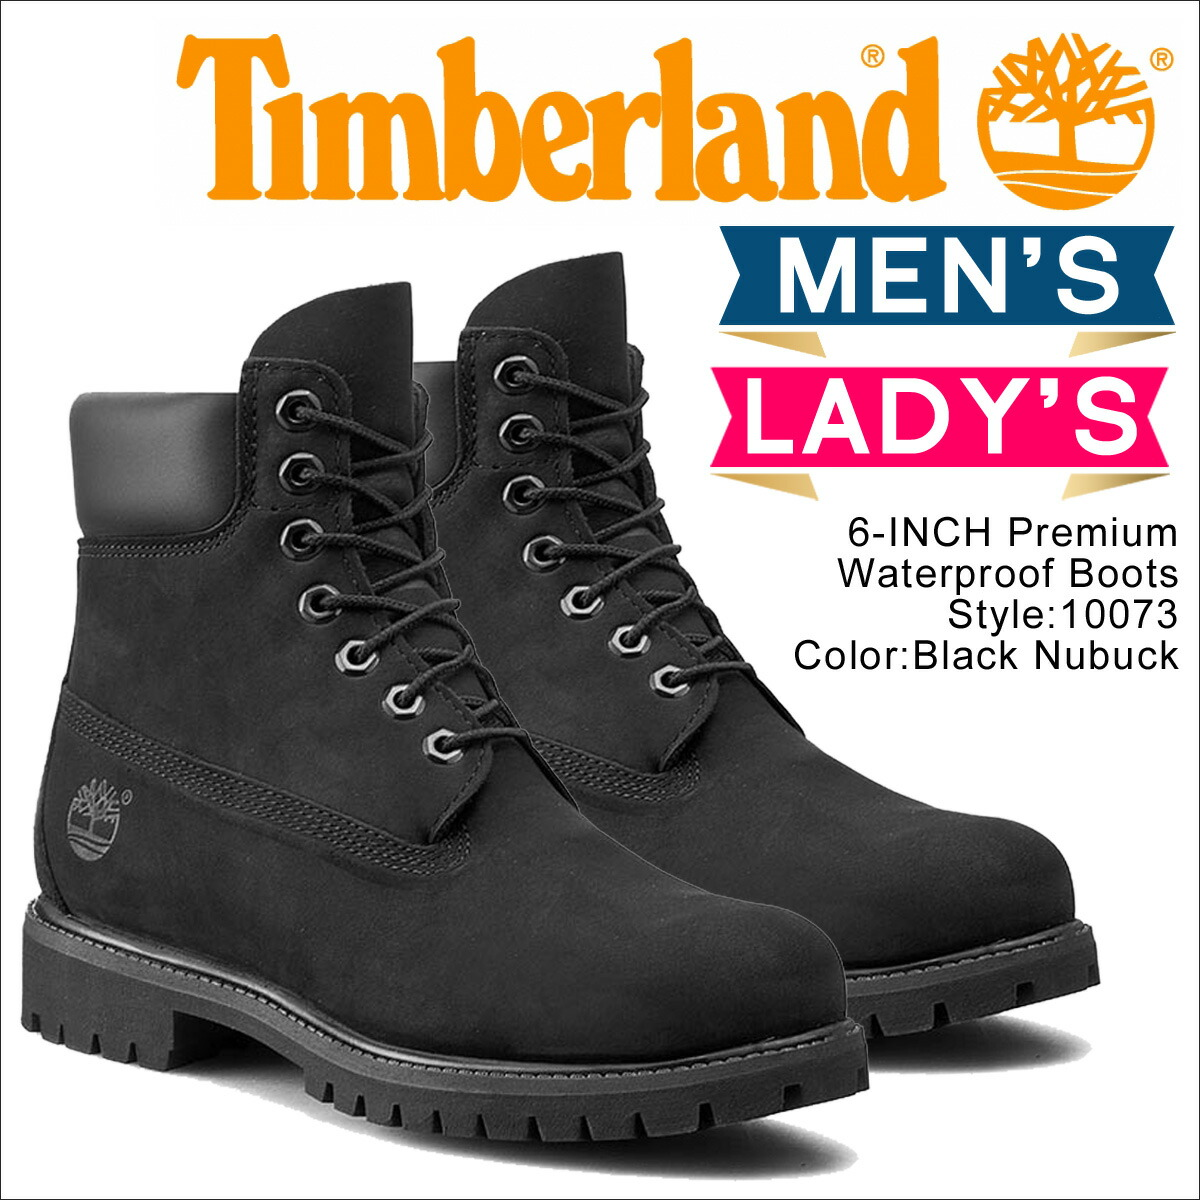 77edab8b3d6 Timberland boots men gap Dis 6 inches Timberland 6INCH PREMIUM WATERPROOF  BOOTS 10073 premium waterproof waterproofing